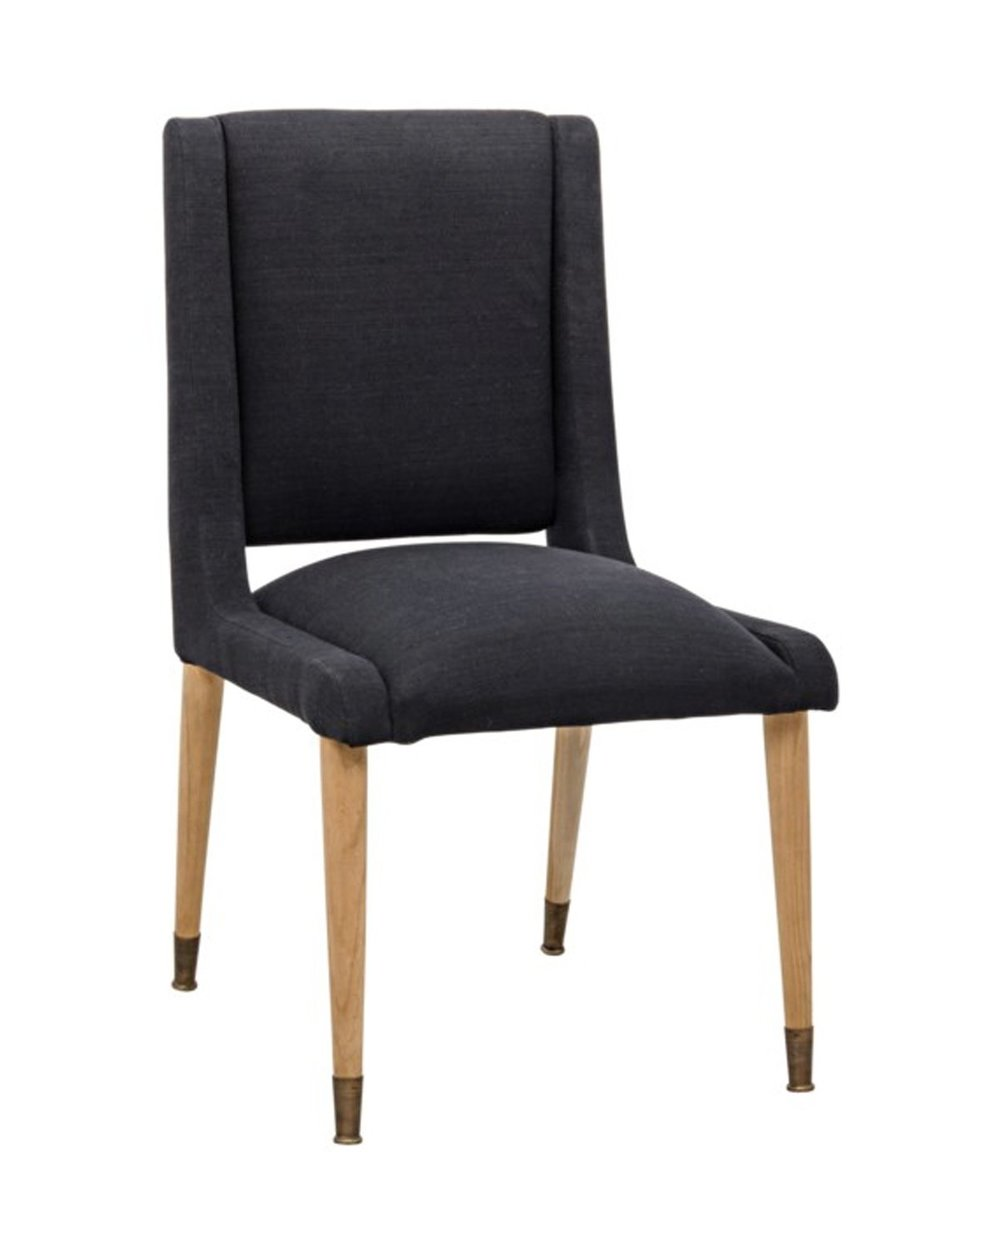 Roscoe_Dining_Chair_1.jpg